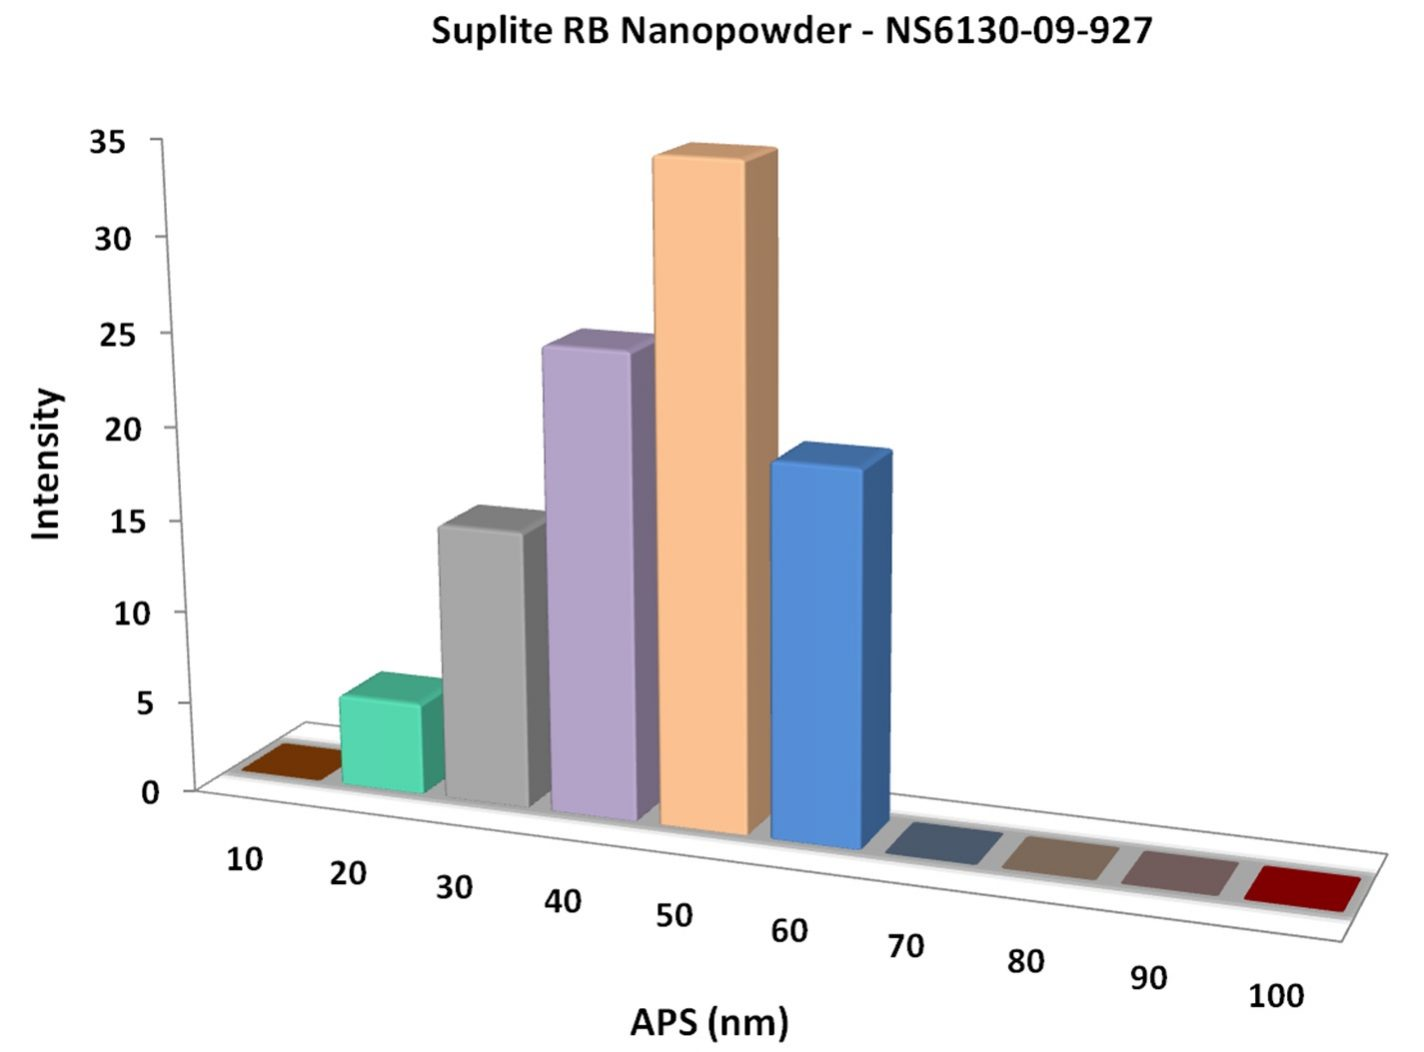 Particles Size Analysis - Suplite RB Nanopowder